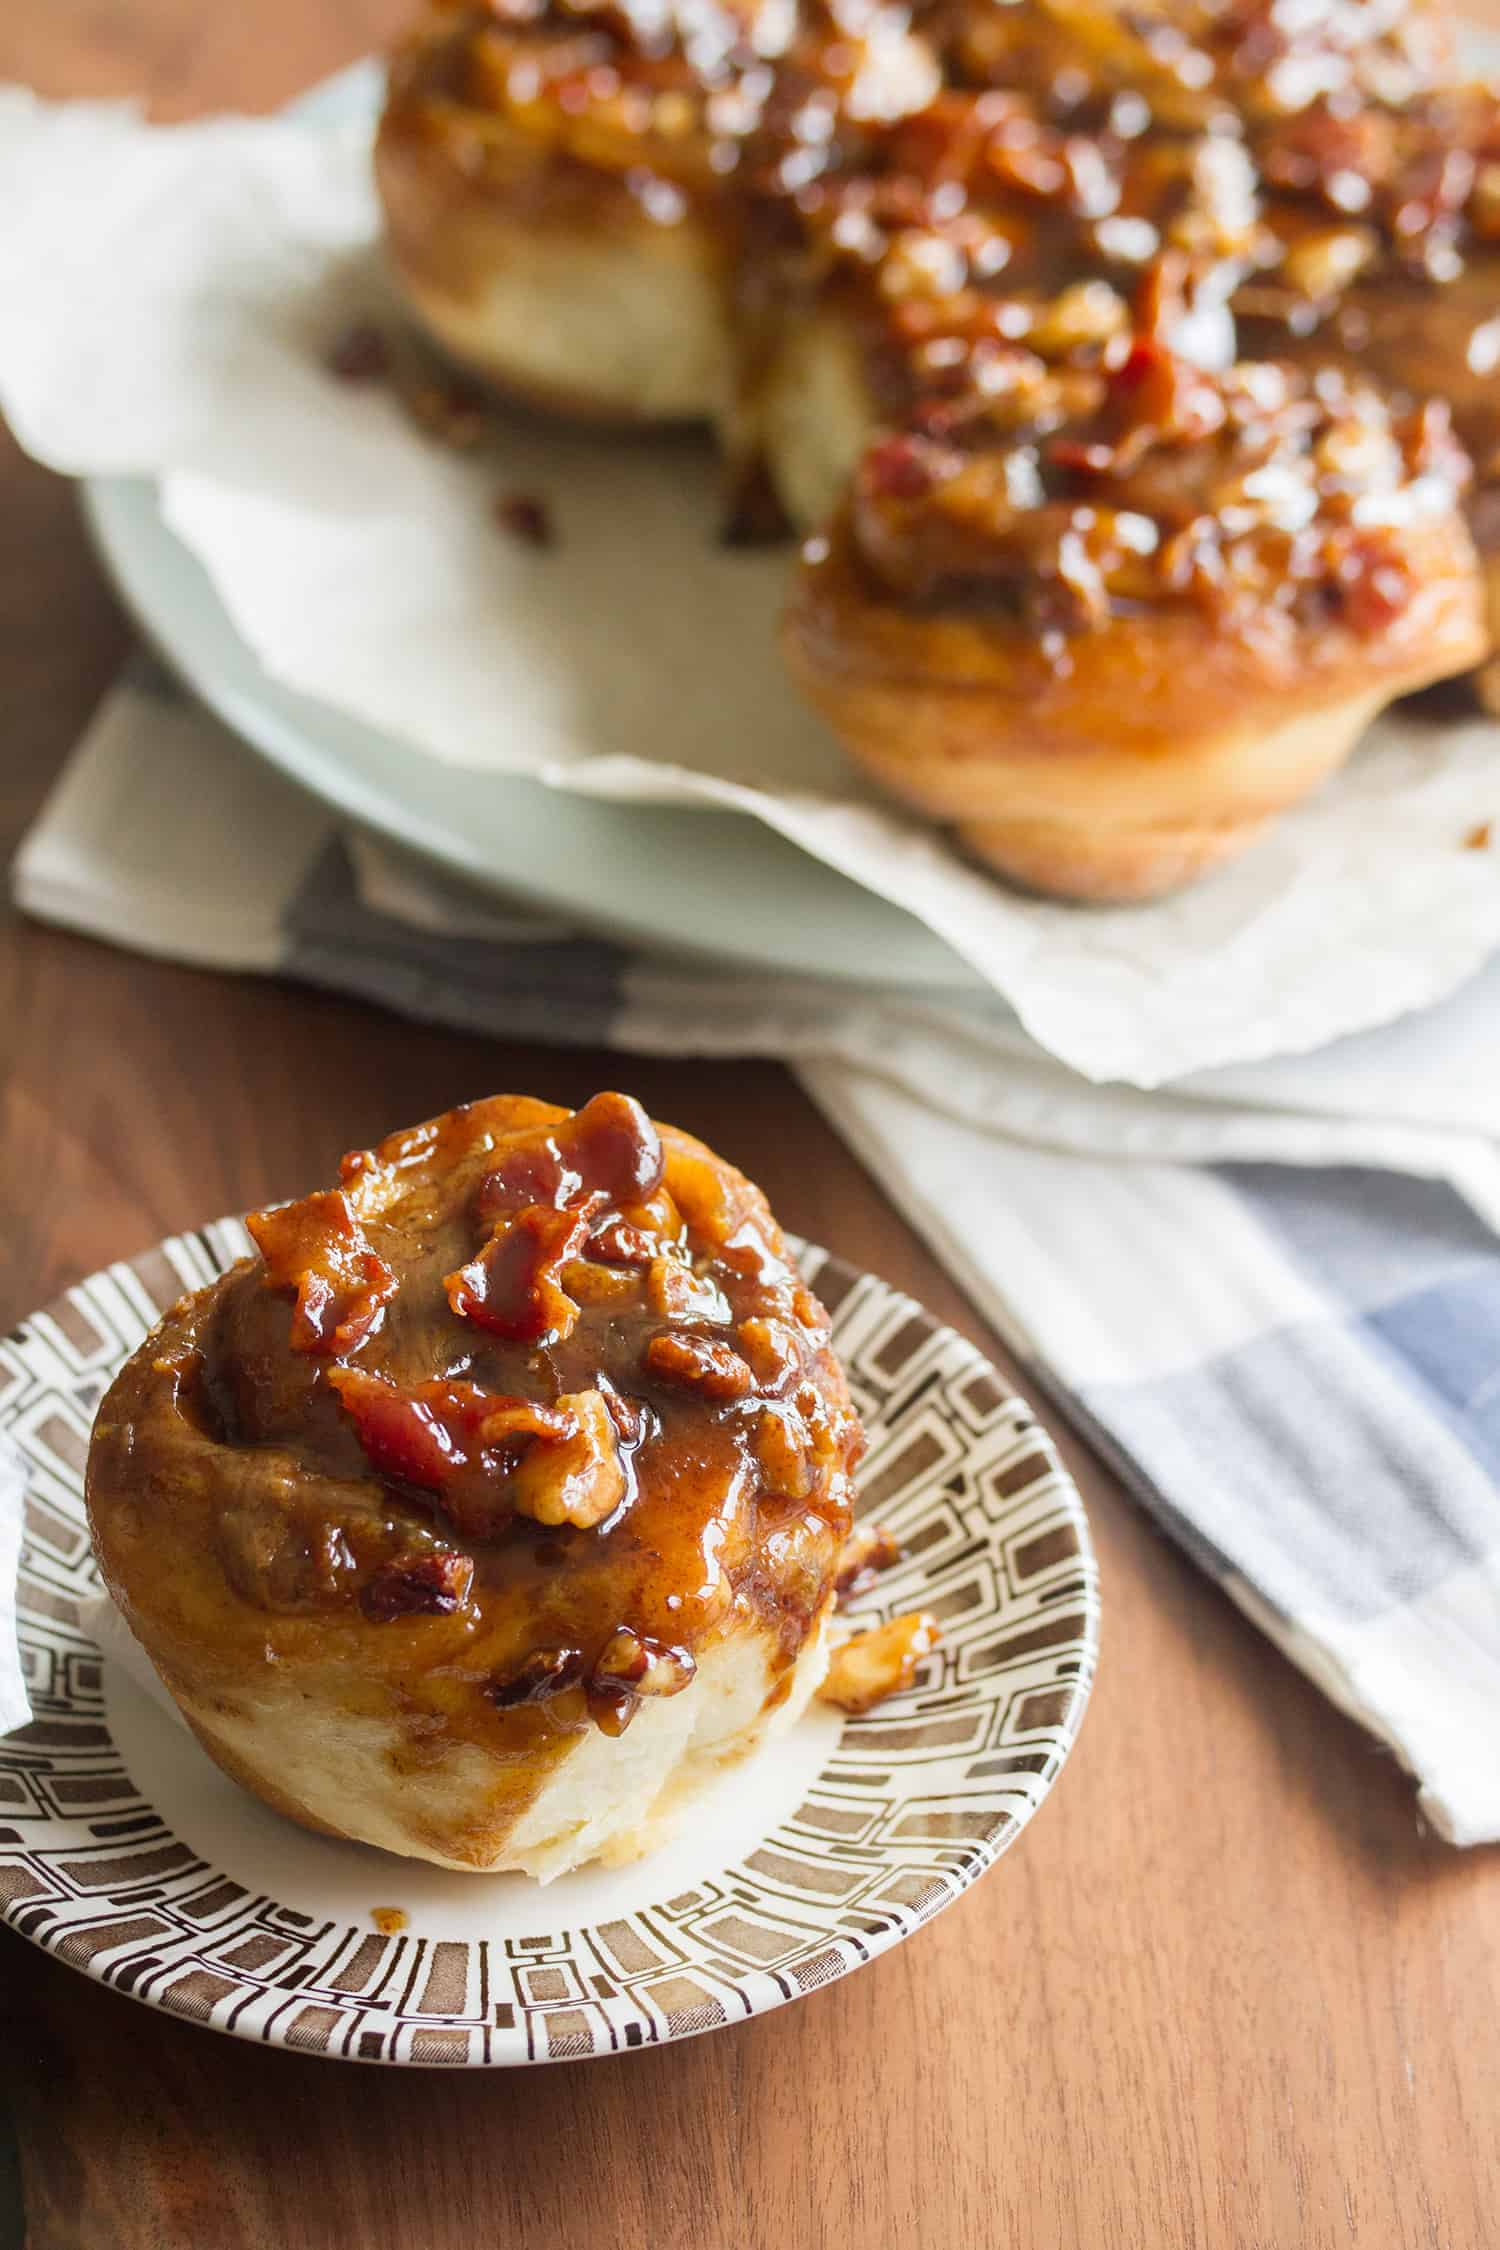 Maple-Bourbon Bacon Sticky Buns